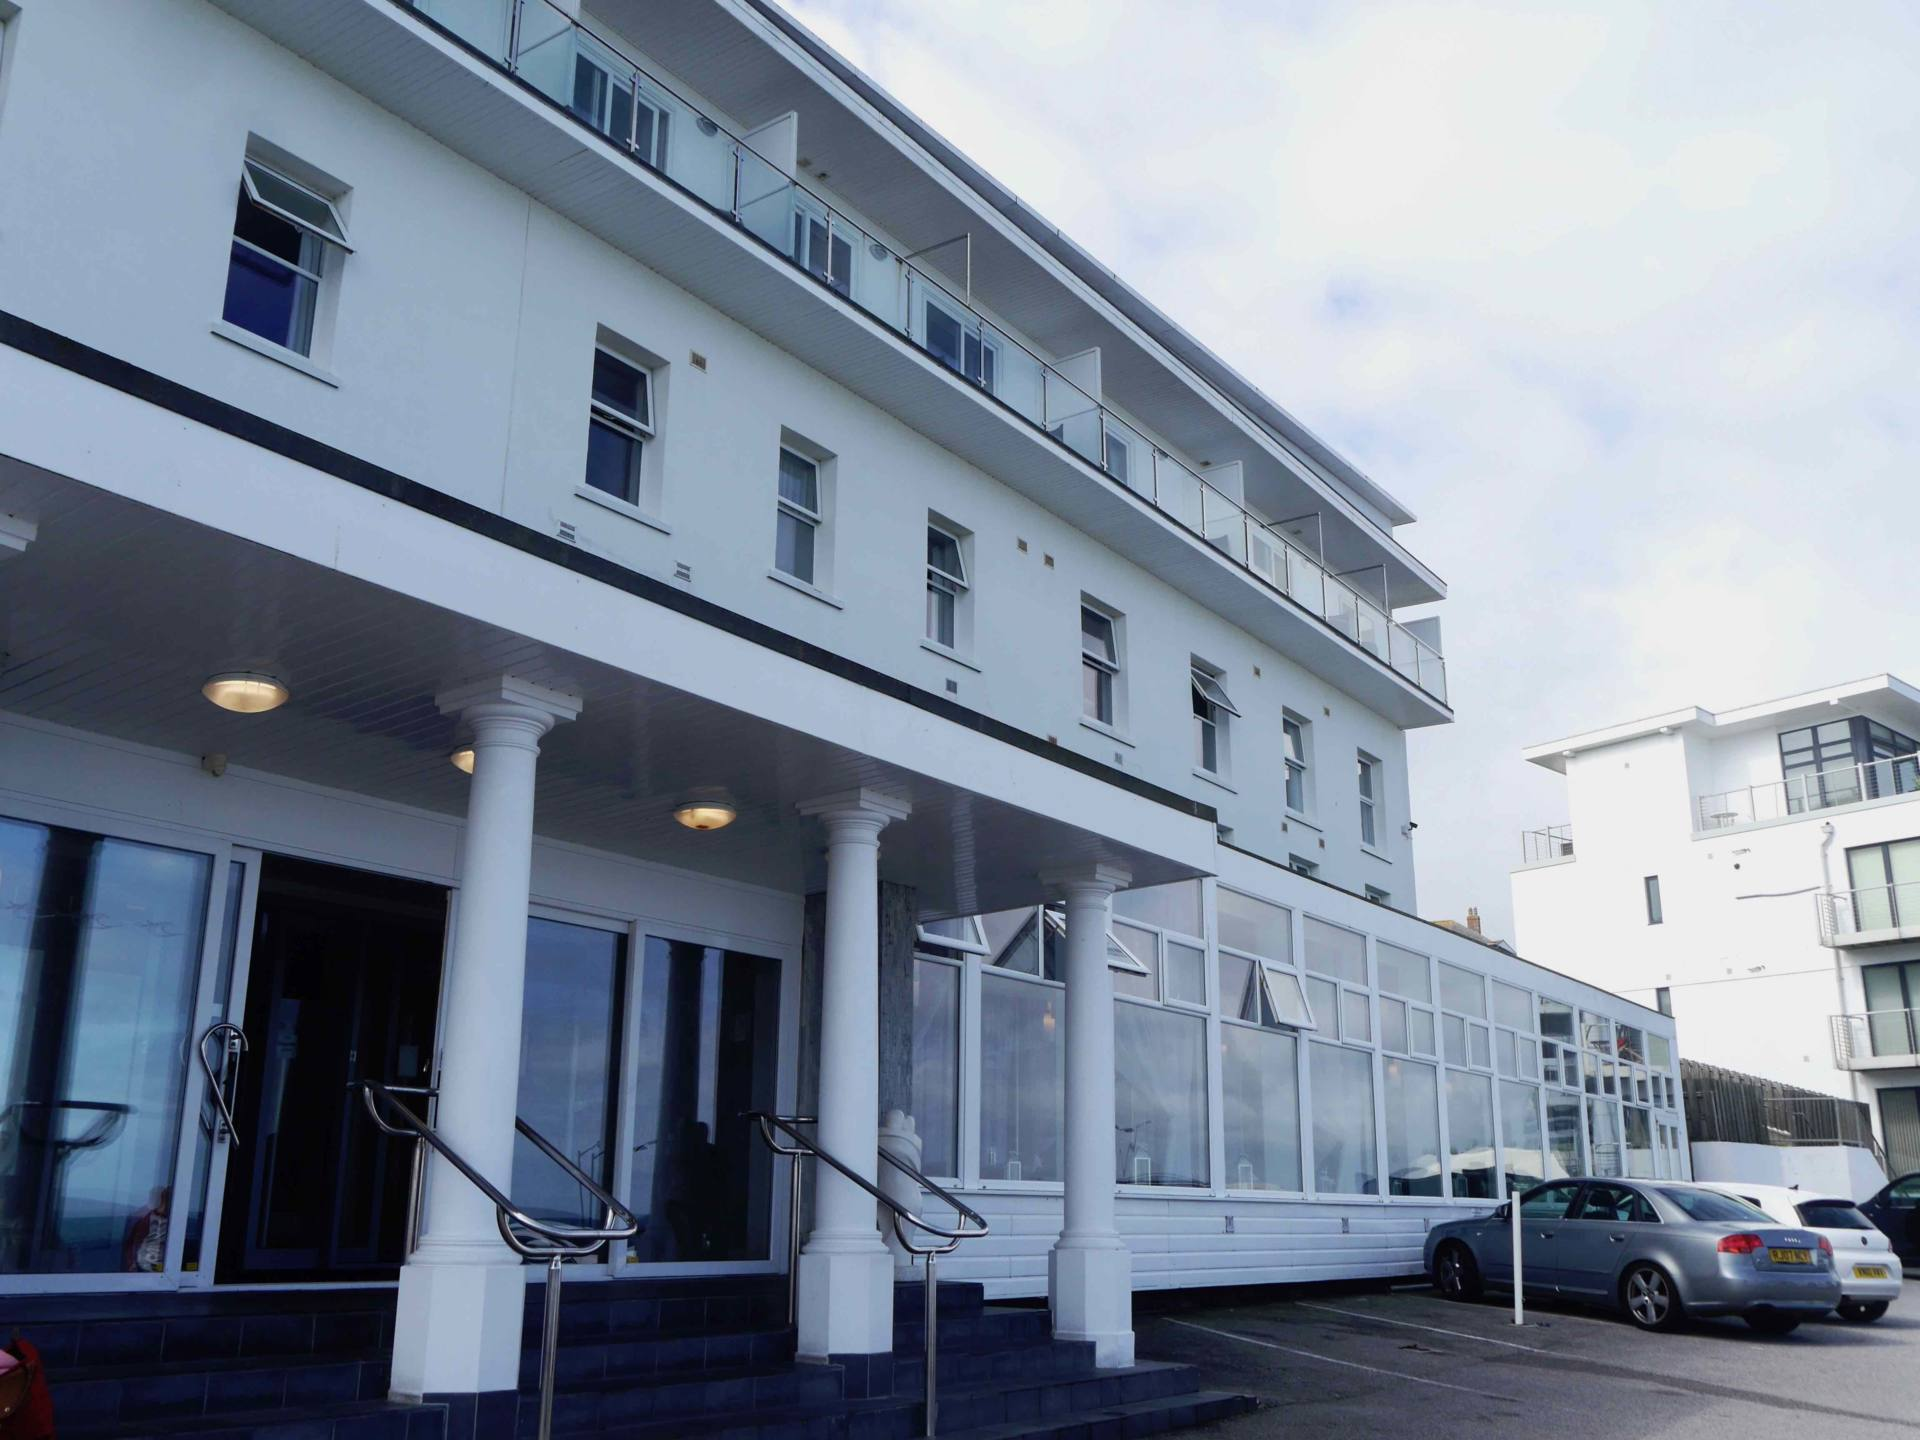 Fistral Beach Hotel Exterior